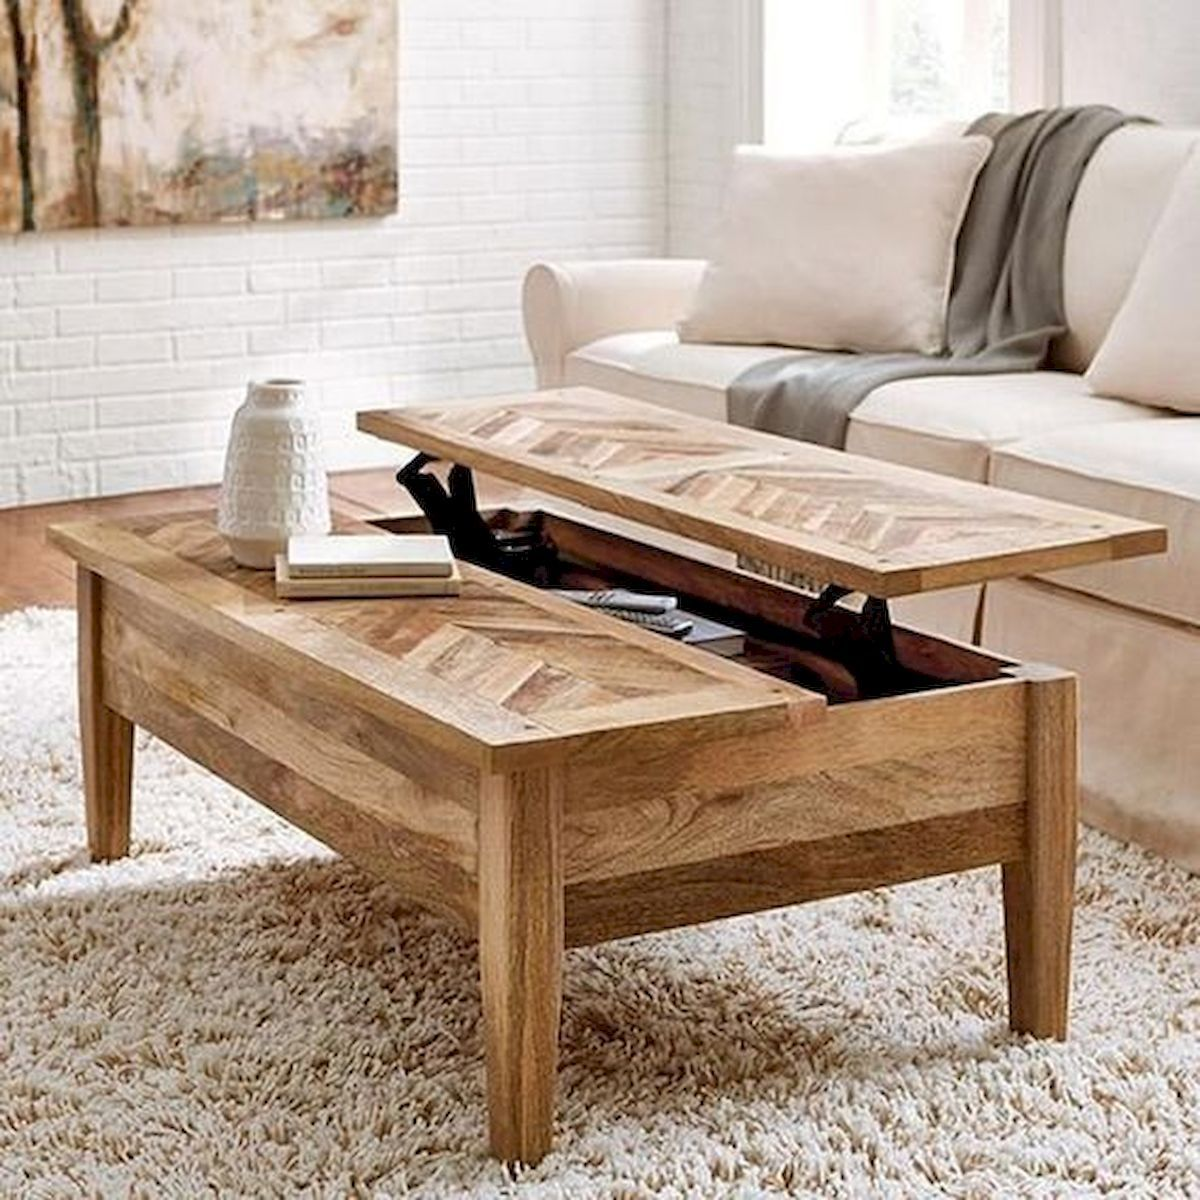 60 Creative Diy Projects Furniture Living Room Table Design Ideas Wooden Coffee Table Designs Coffee Table Farmhouse Living Room Table [ 1200 x 1200 Pixel ]